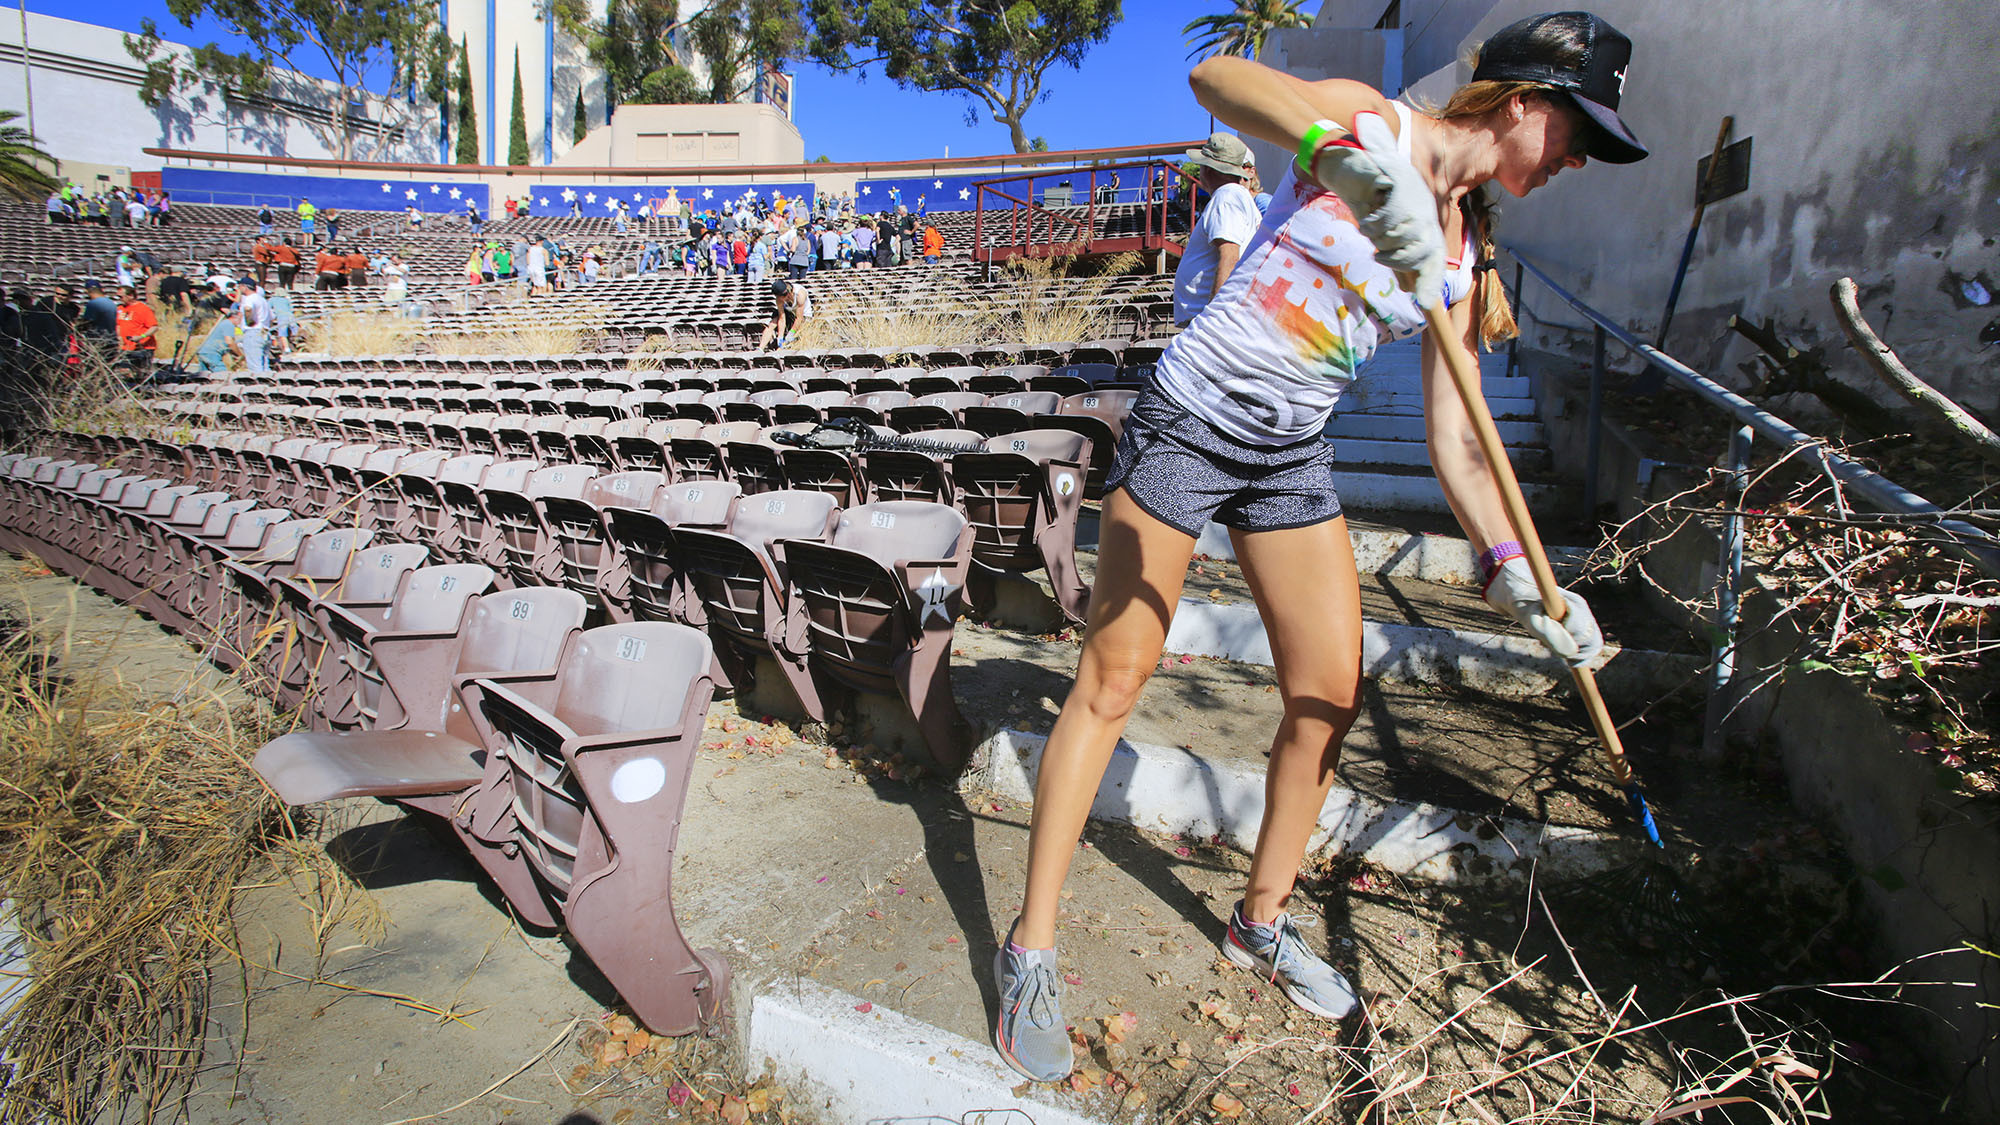 Torrey Pines State Beach and Reserve San Diego, Fans of San Diego's Starlight Bowl hope to revive shuttered ...